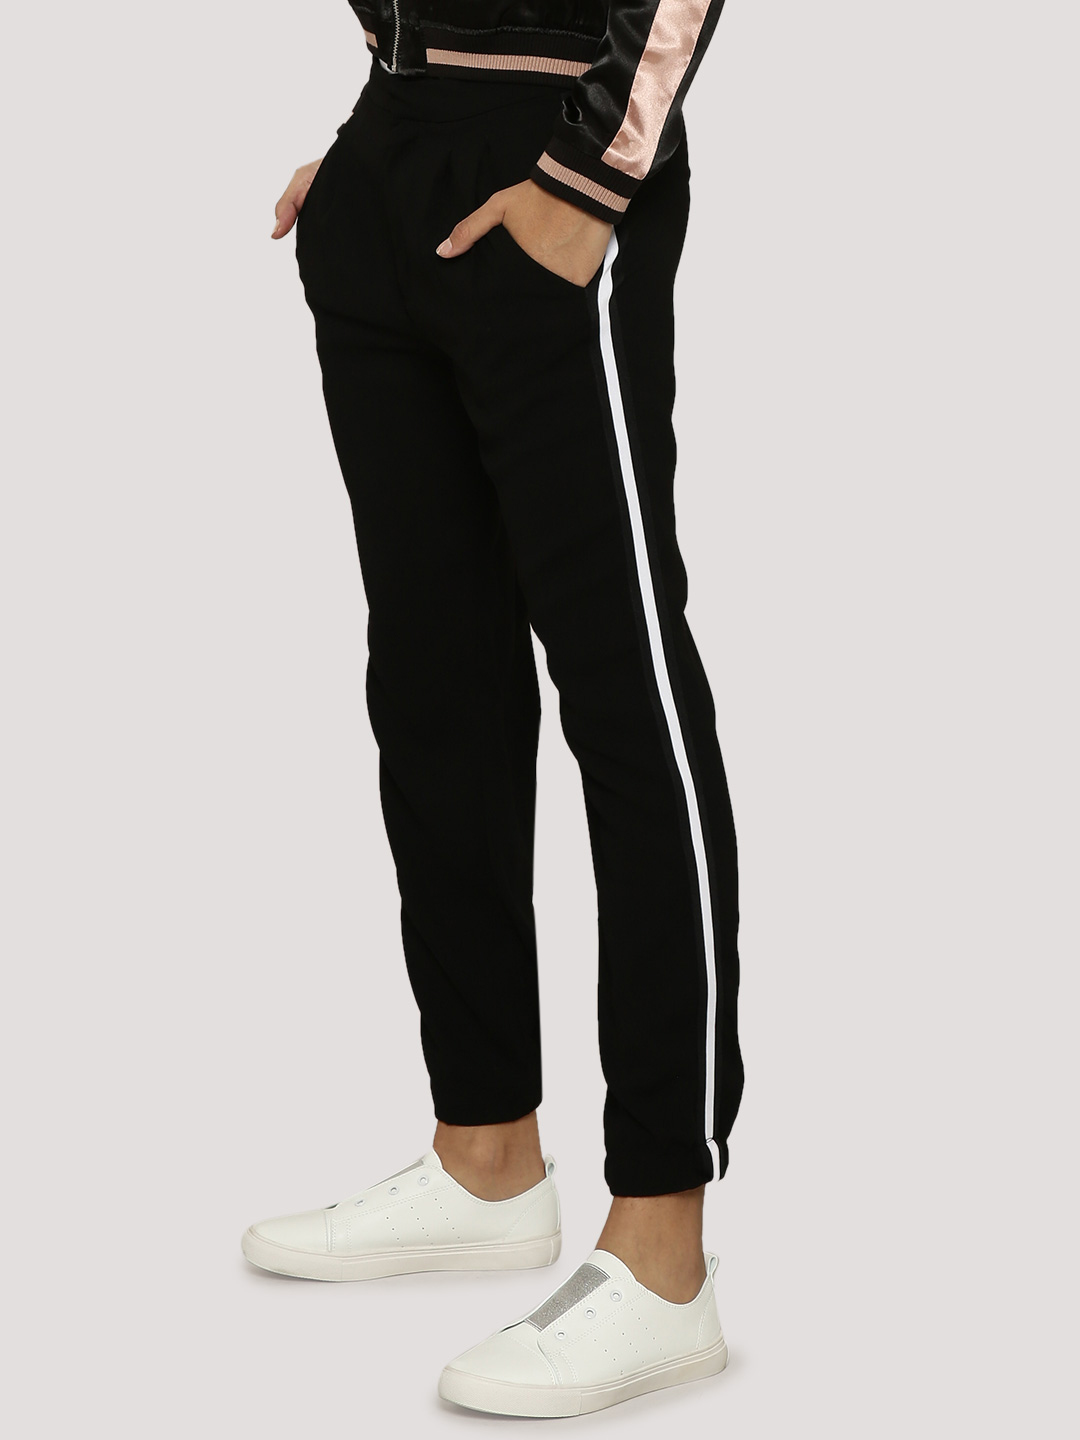 Evah London Black Sporty Trouser With Side Tape 1